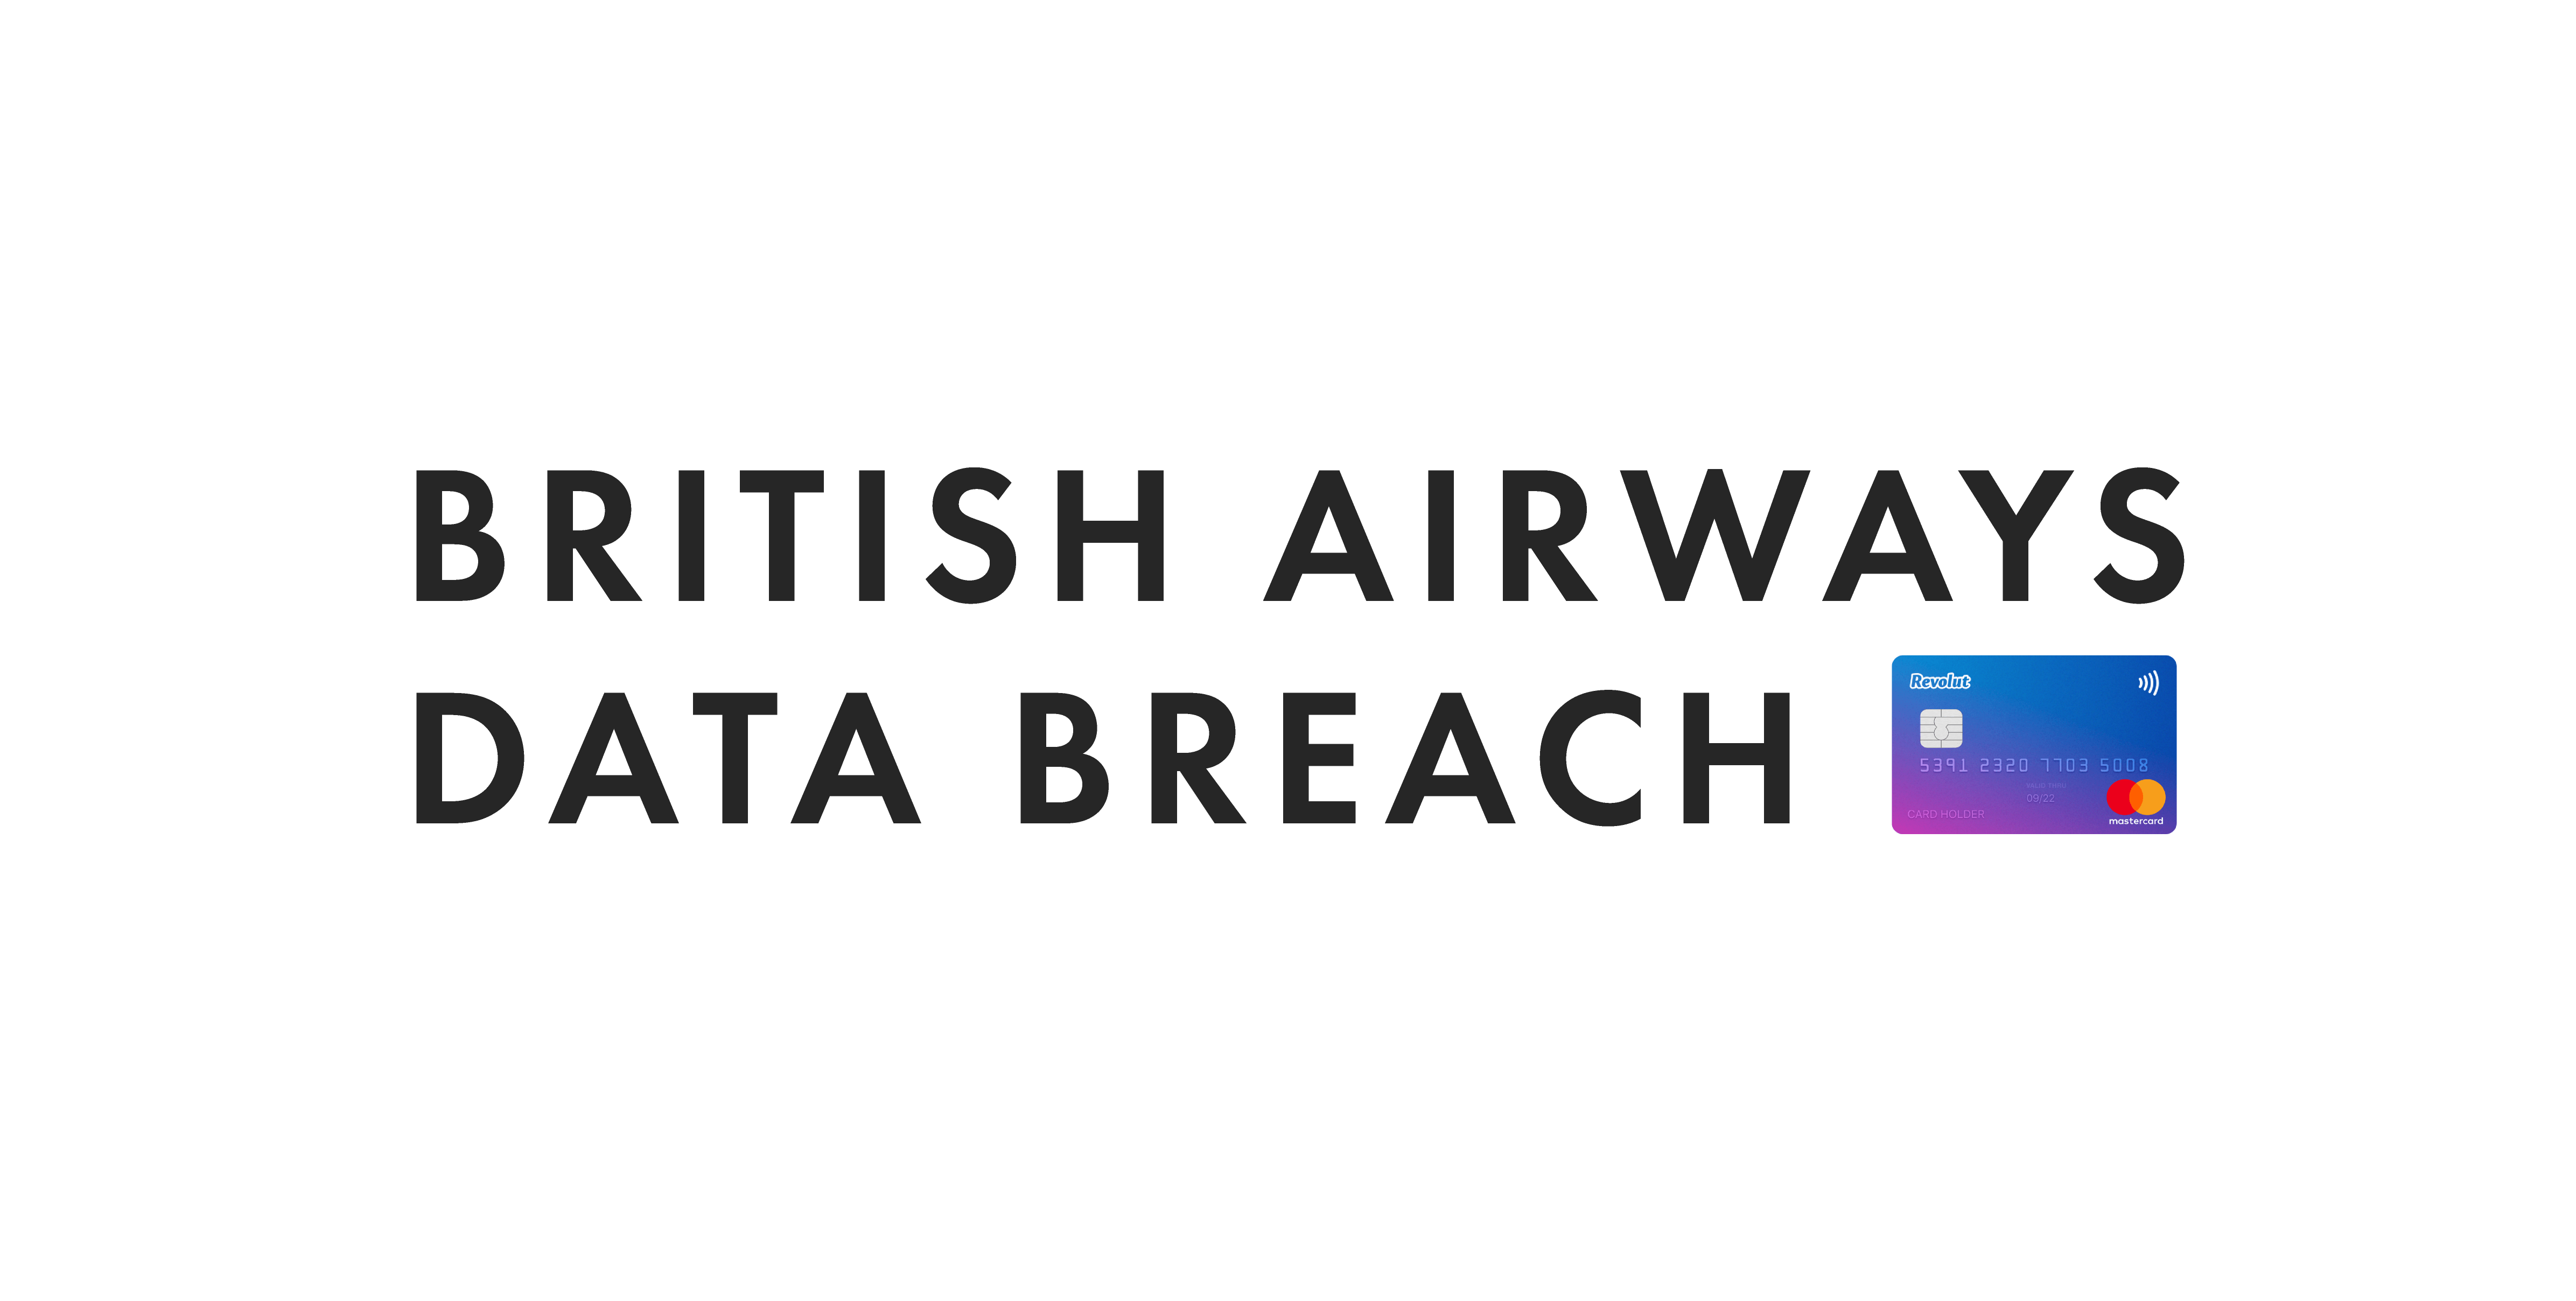 BA breach: what happened and is my data safe?